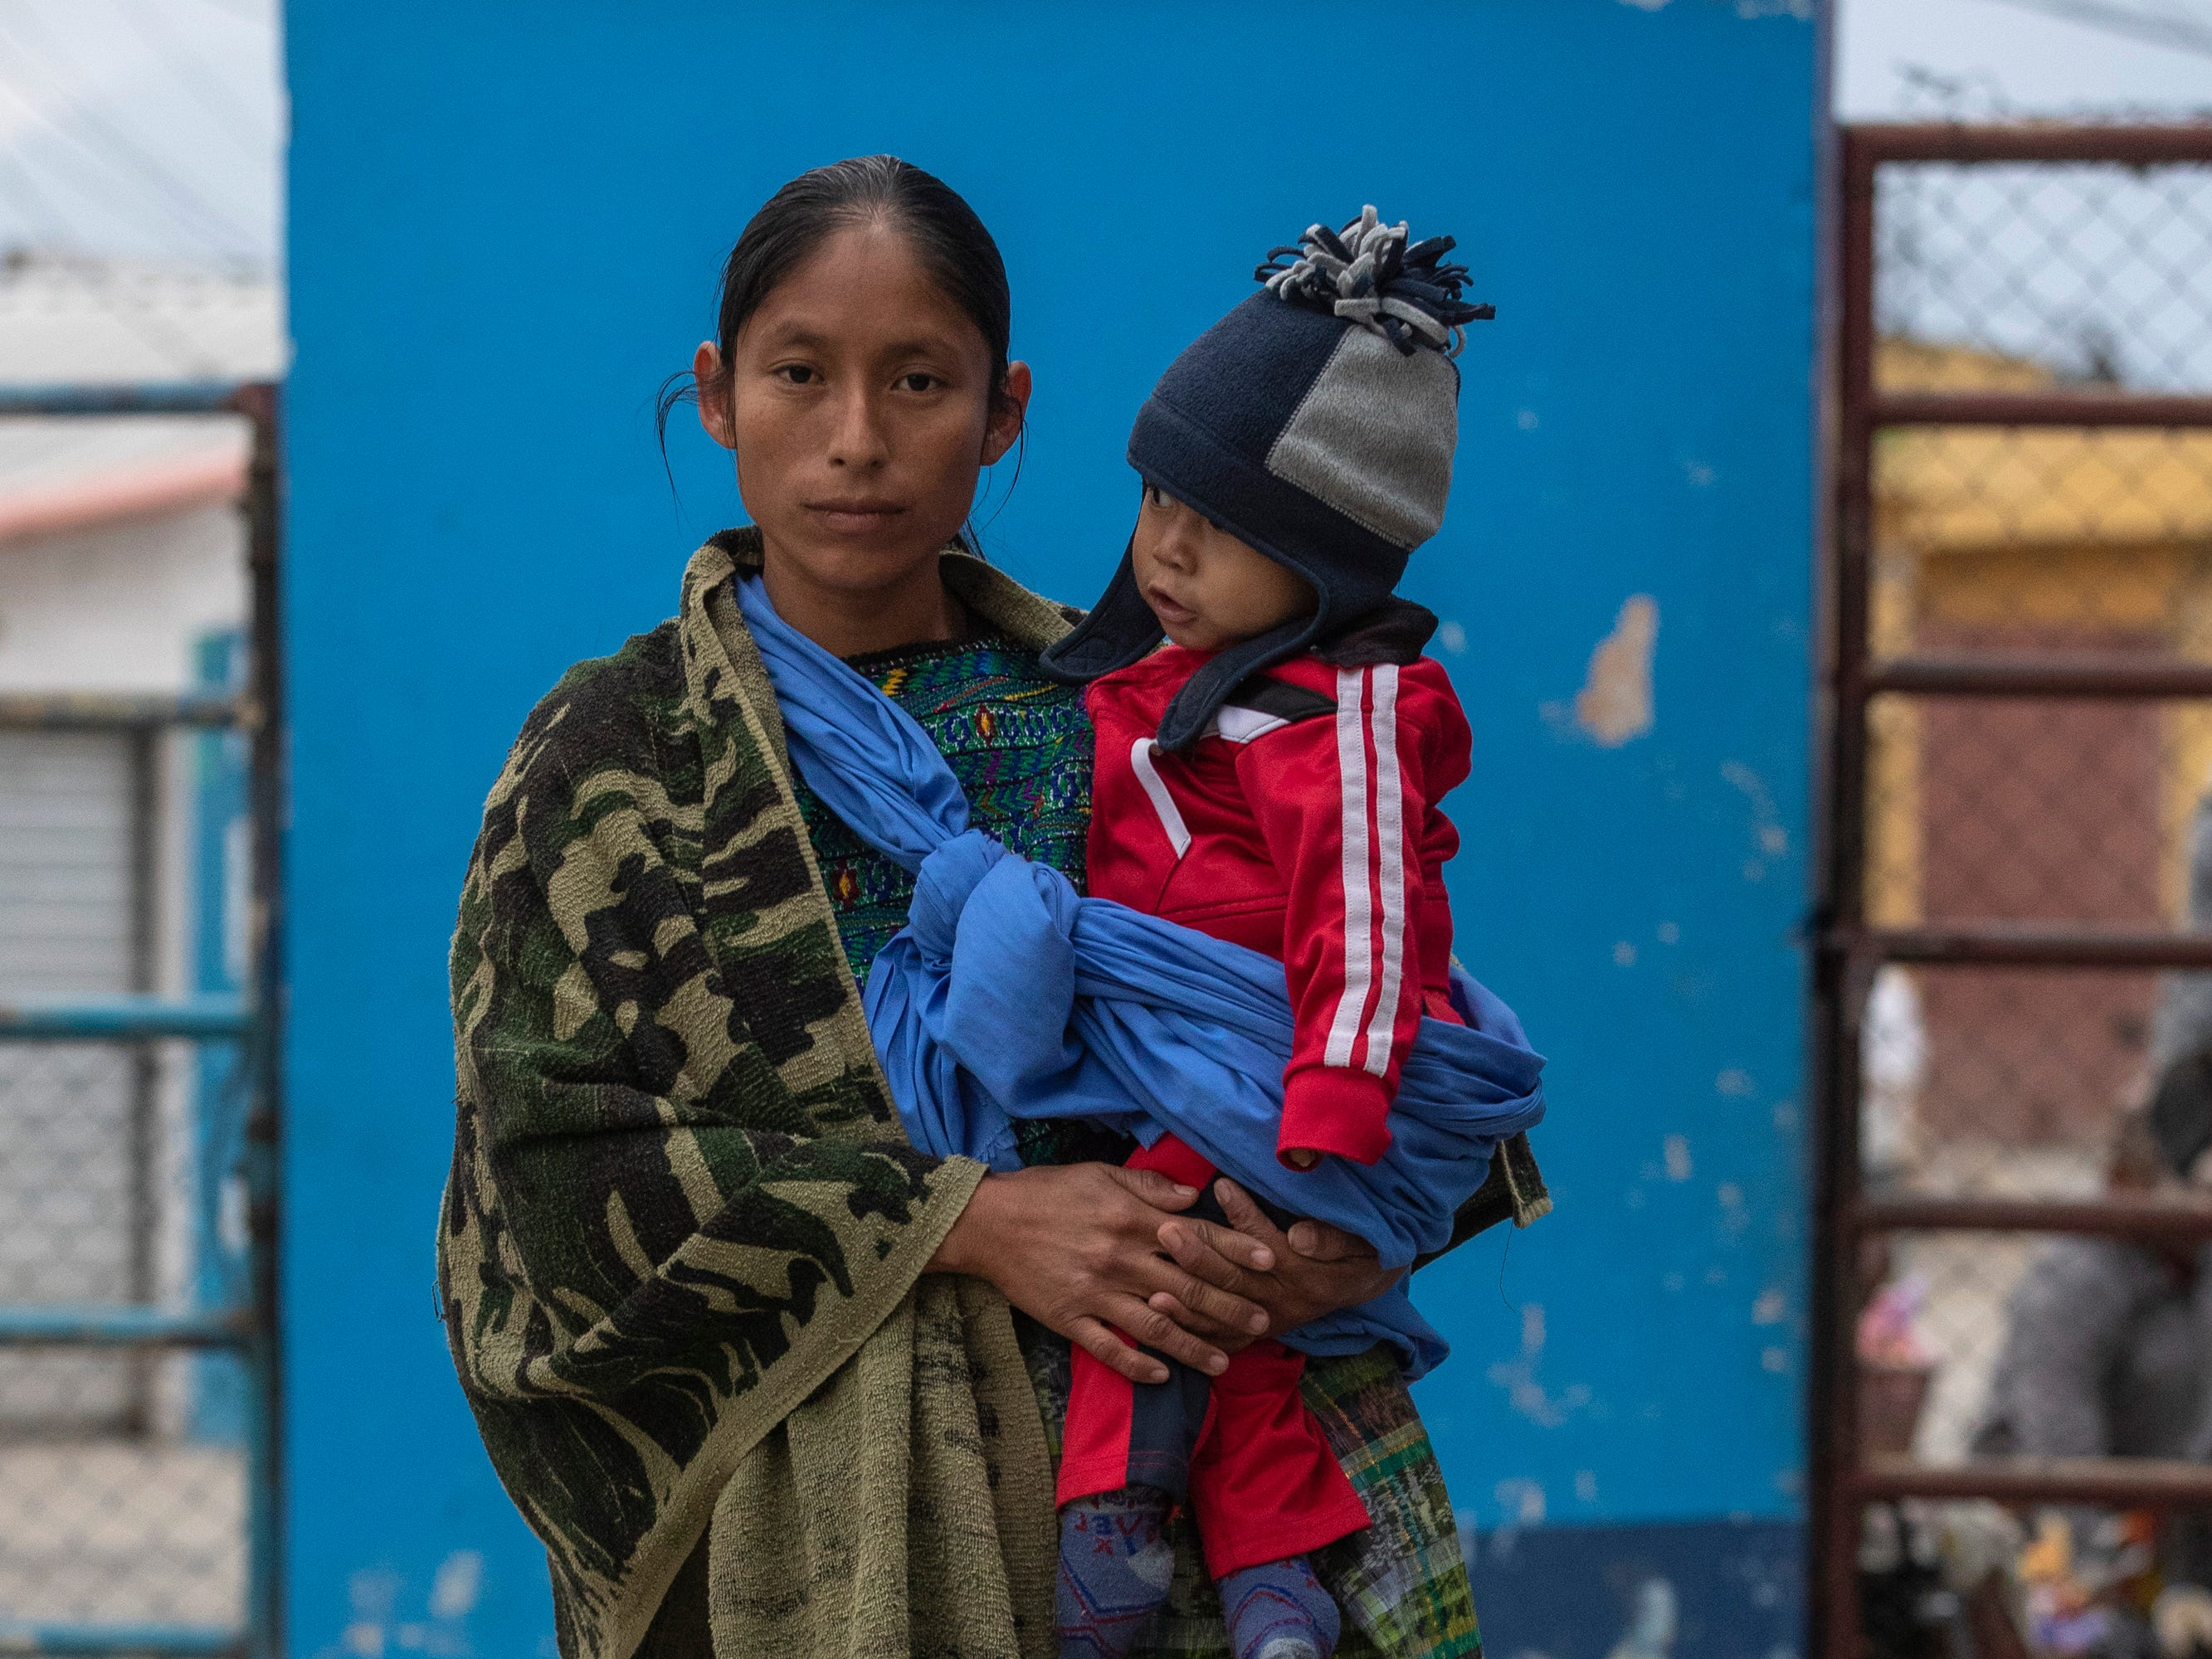 Estella Rojas - Ordoñez, left, holds her 14-month-old son, Wilfredo Vazquez Rojas, as they wait in line outside the hospital in Salamá, Guatemala. Wilfredo was born with club feet and Estella hopes that Children of the Americas' orthopedic surgeon, Dr. George Quill, will be able to see him and correct it. Jan. 20, 2019